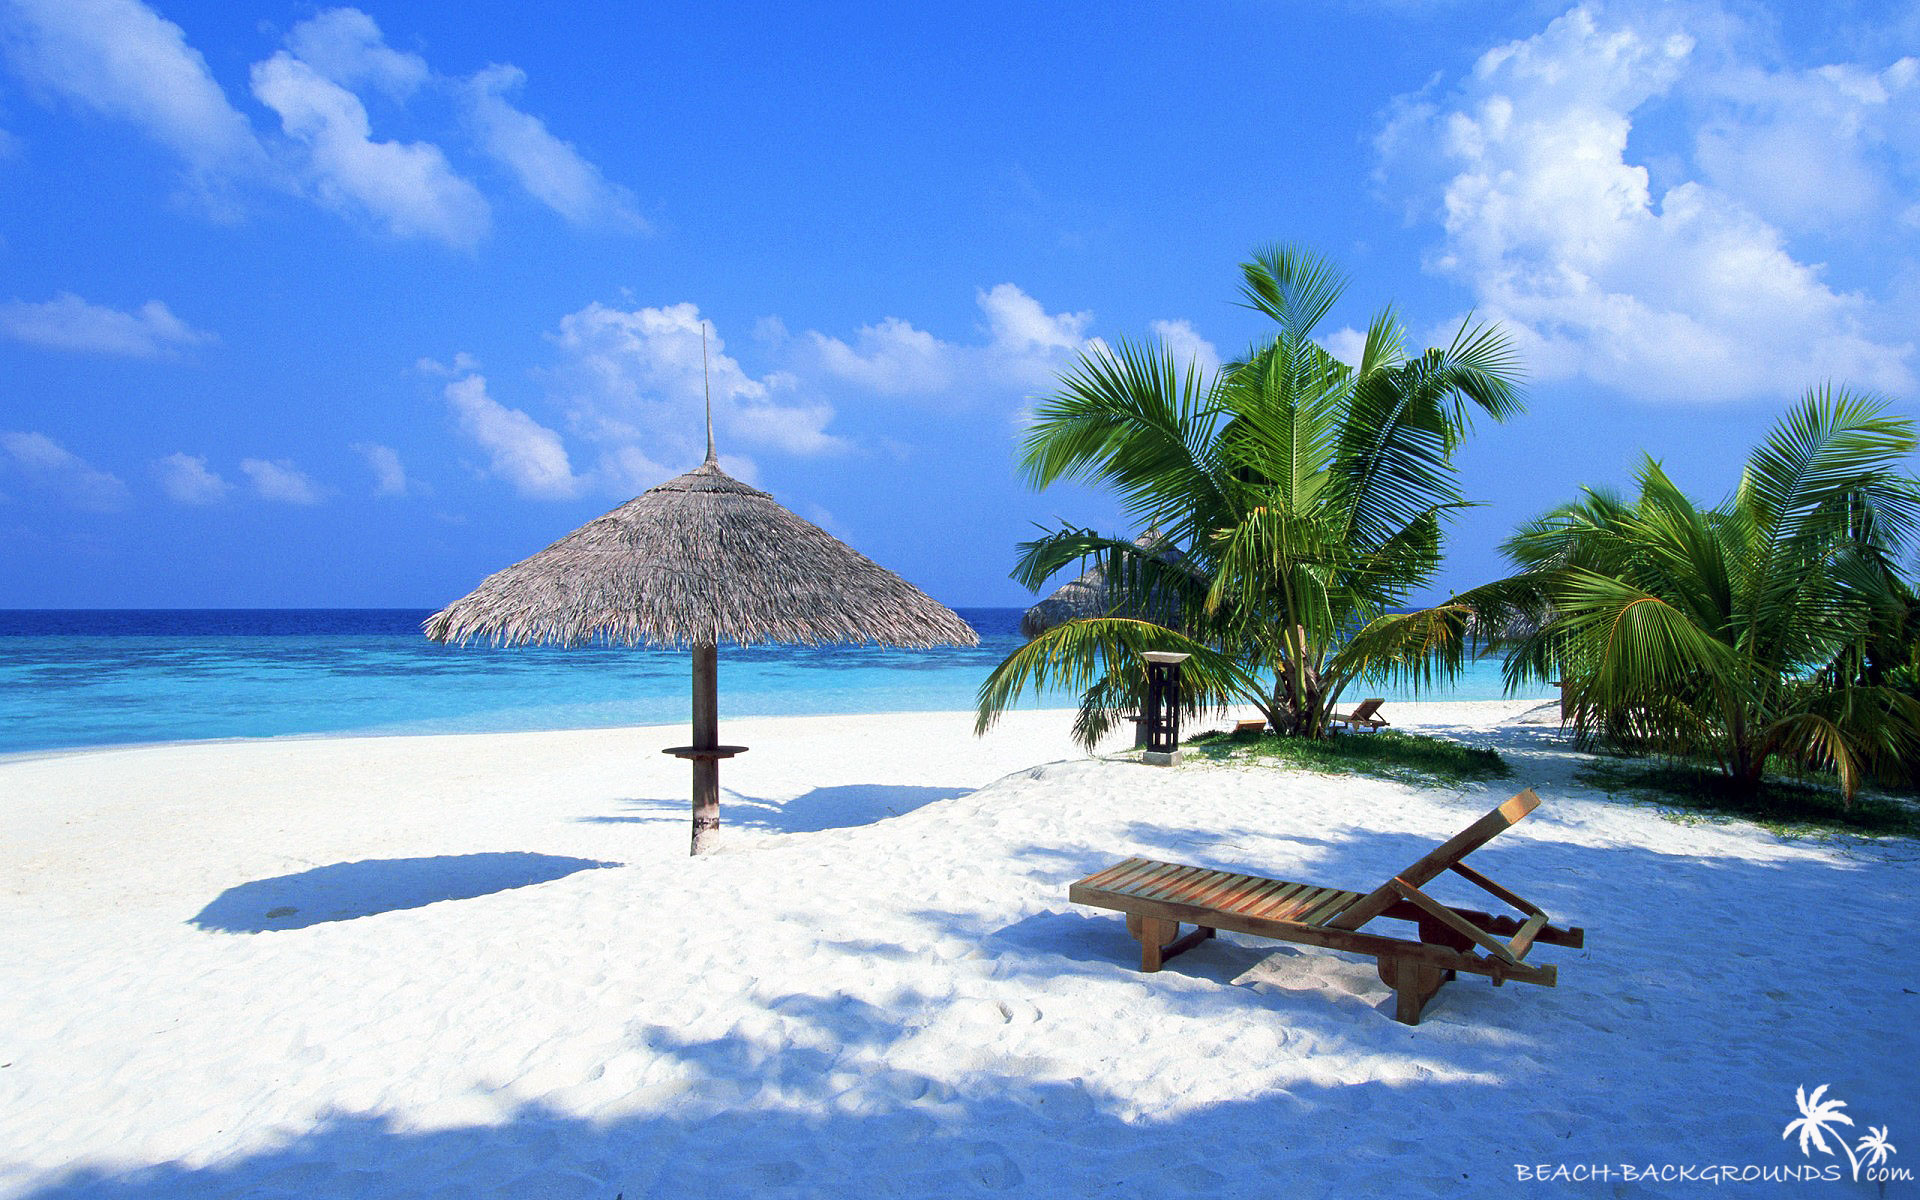 Vacation Destination Holiday Wallpaper 1920x1200